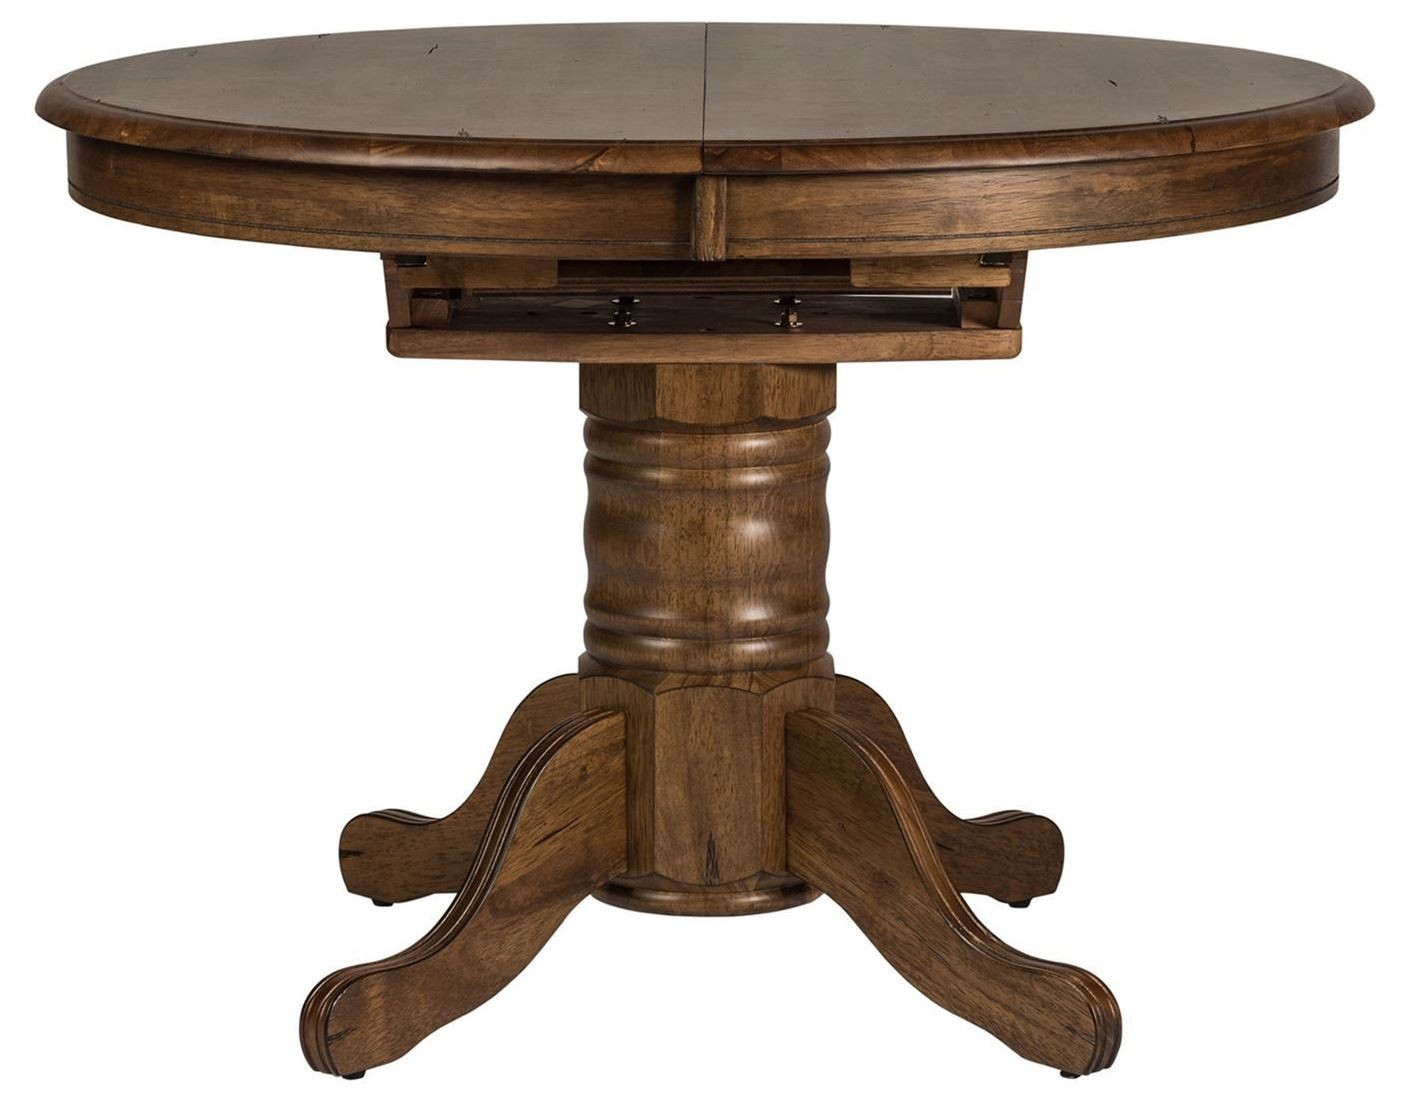 Carolina Crossing Antique Honey Oval Extendable Pedestal Throughout Latest Serrato Pedestal Dining Tables (View 2 of 15)